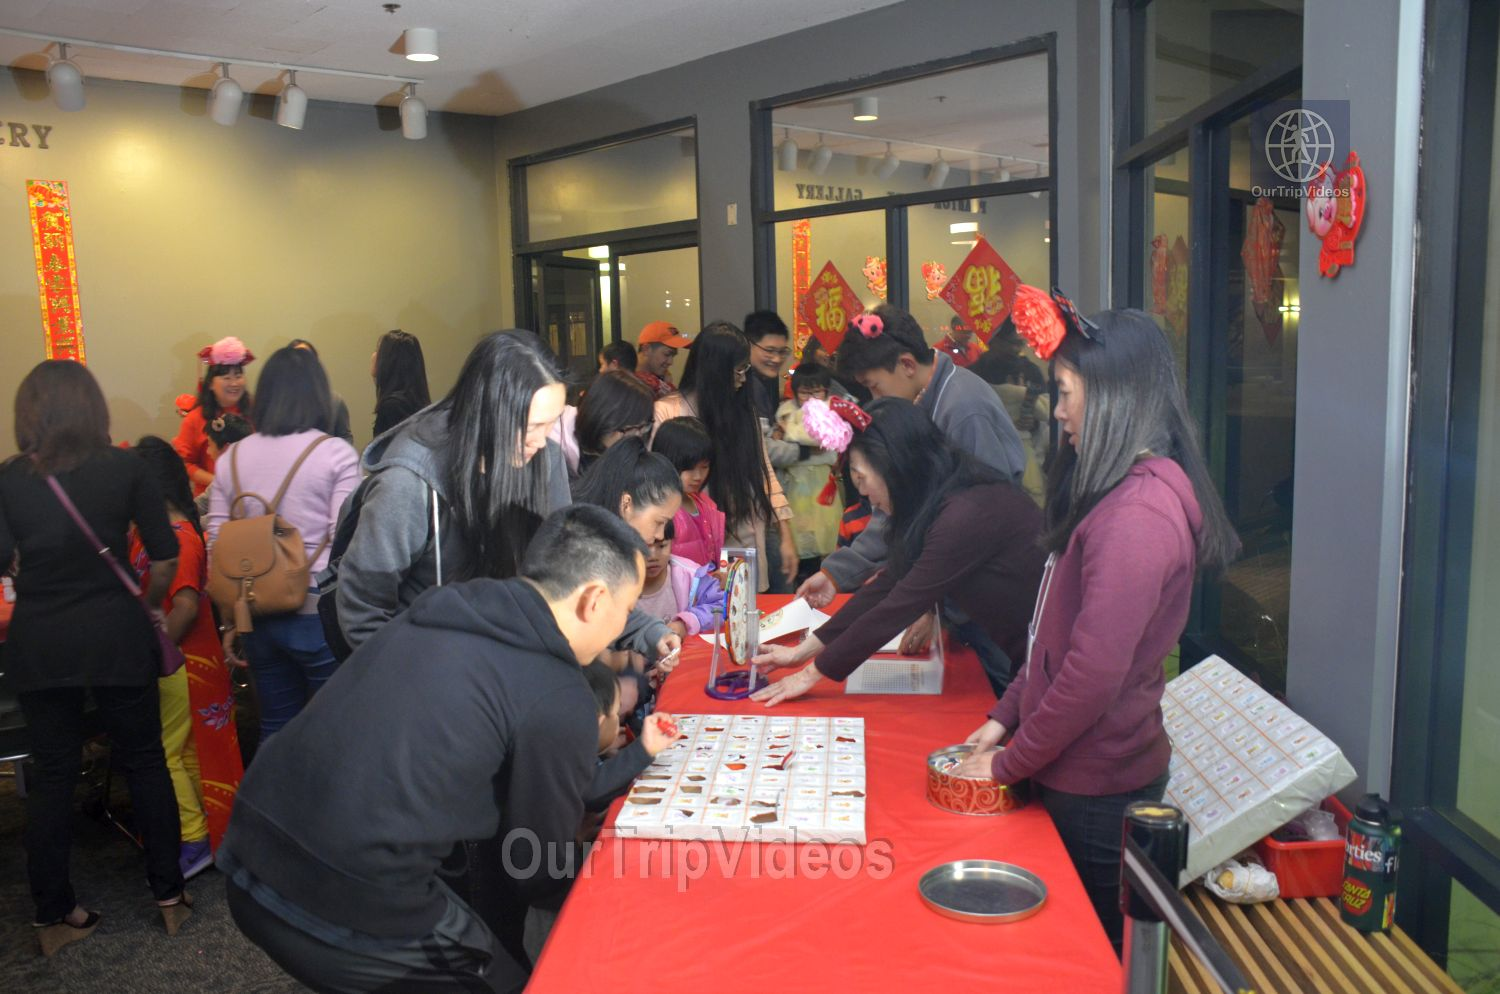 Chinese Lunar New Year Celebration, Milpitas, CA, USA - Picture 1 of 25